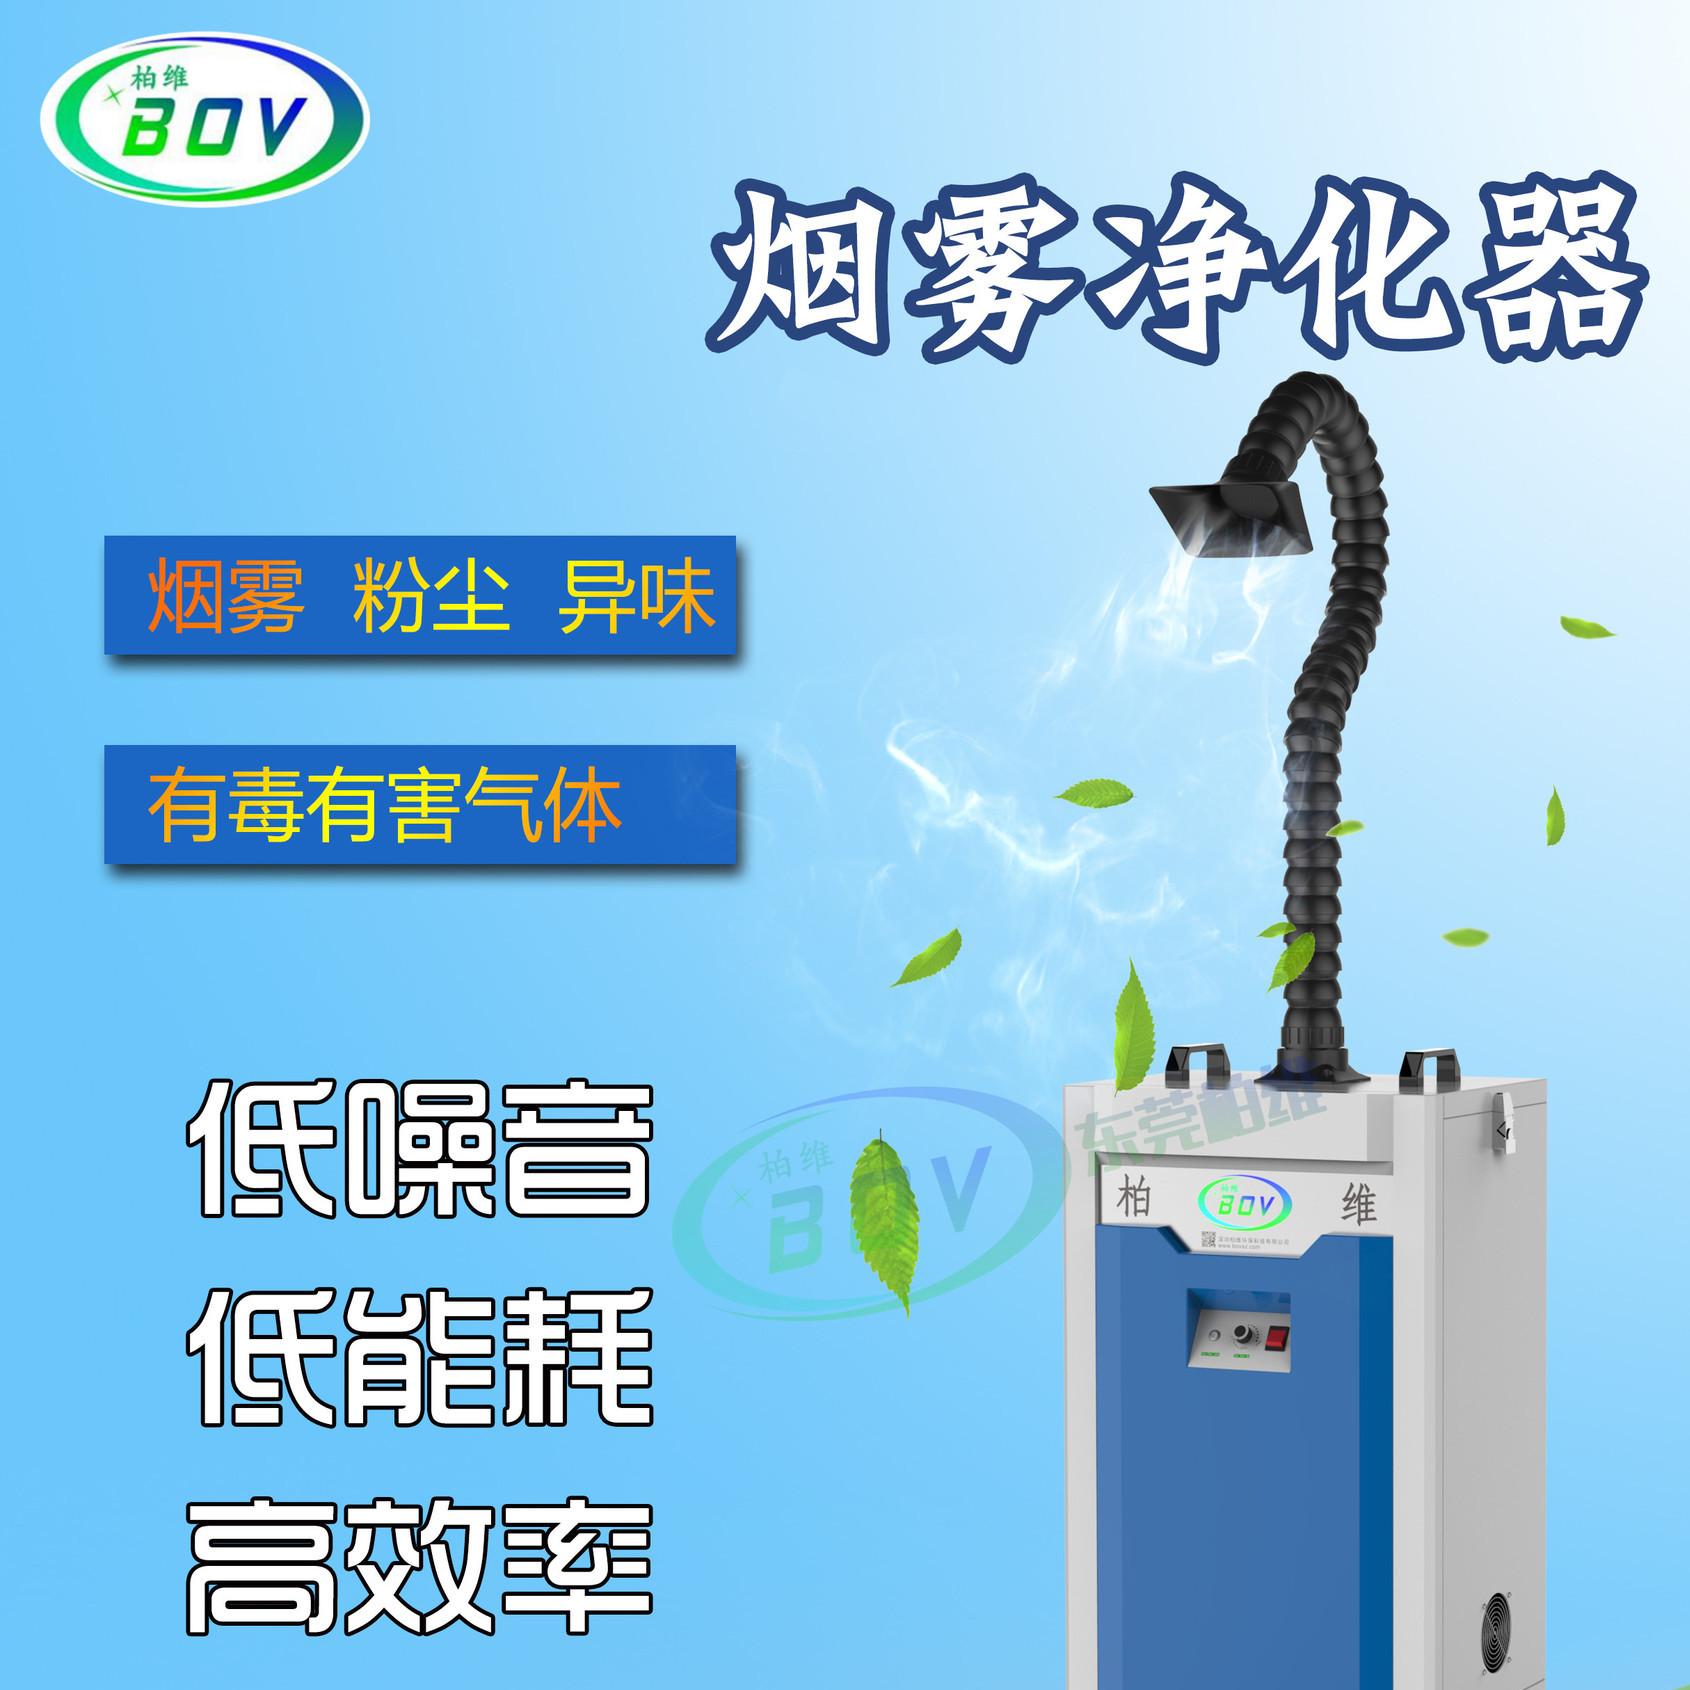 Laser engraving laser marking laser cutting smoke exhaust equipment odor filter dust collector